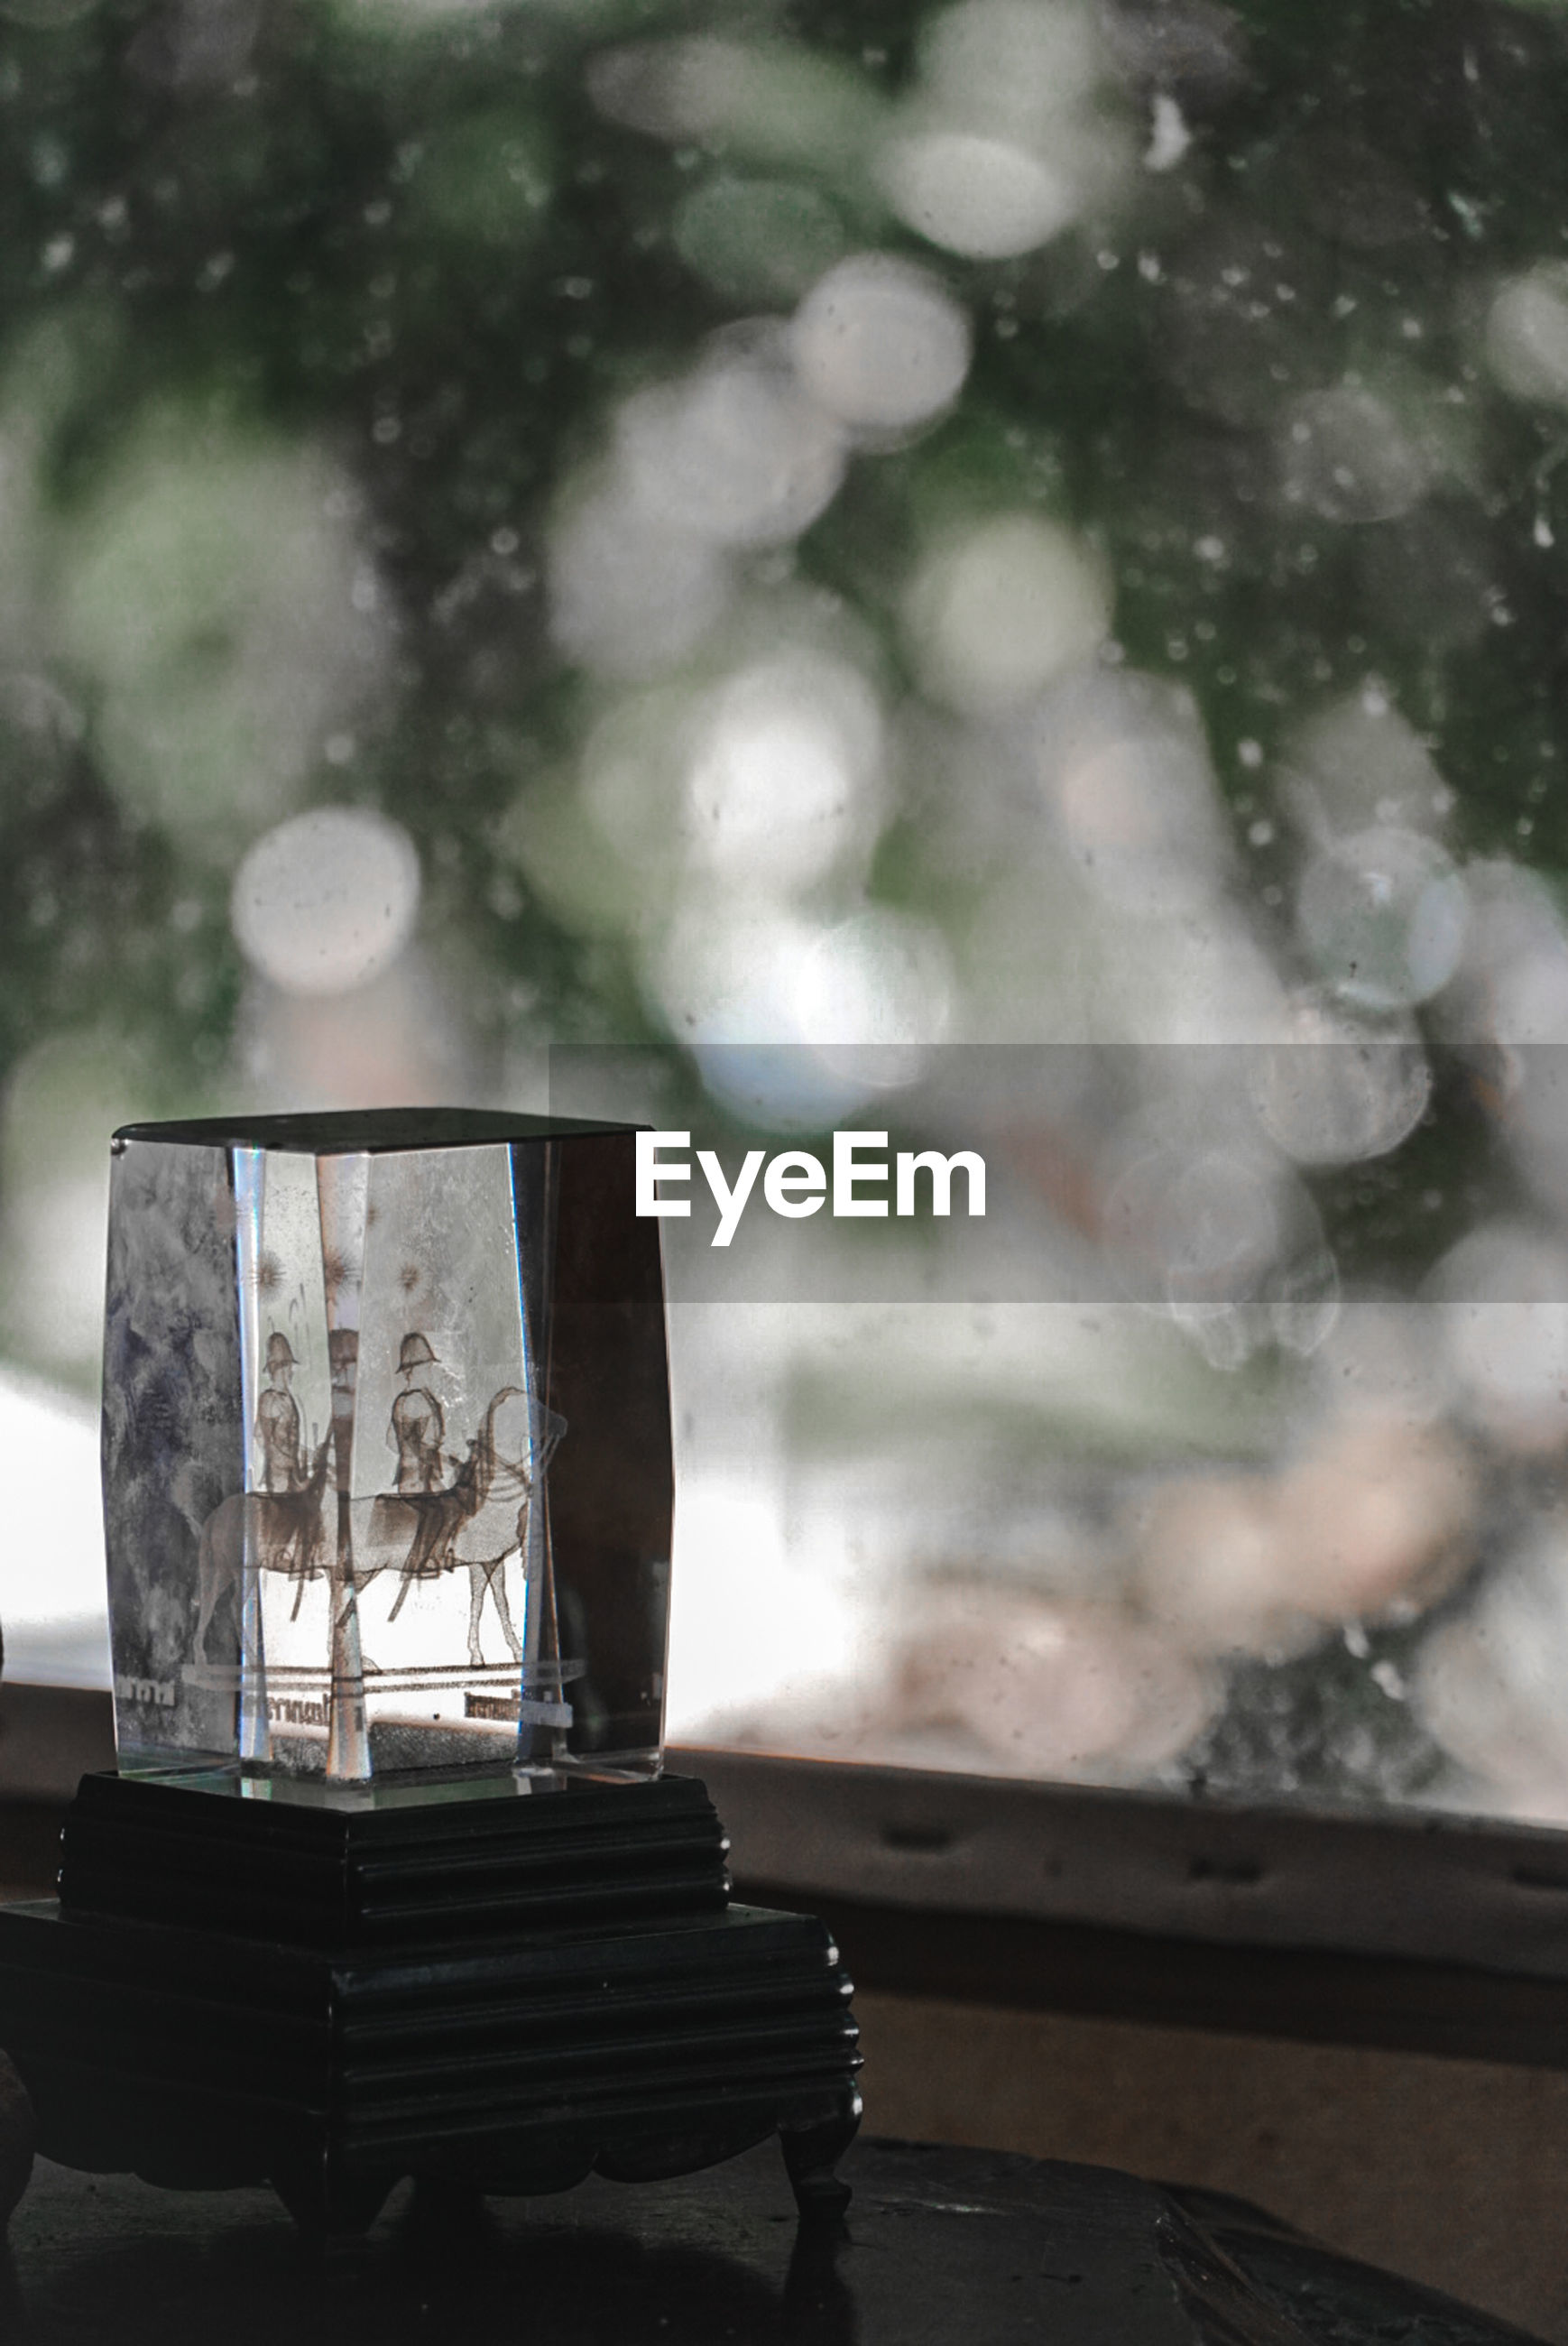 CLOSE-UP OF GLASS WINDOW ON TABLE AGAINST TREES